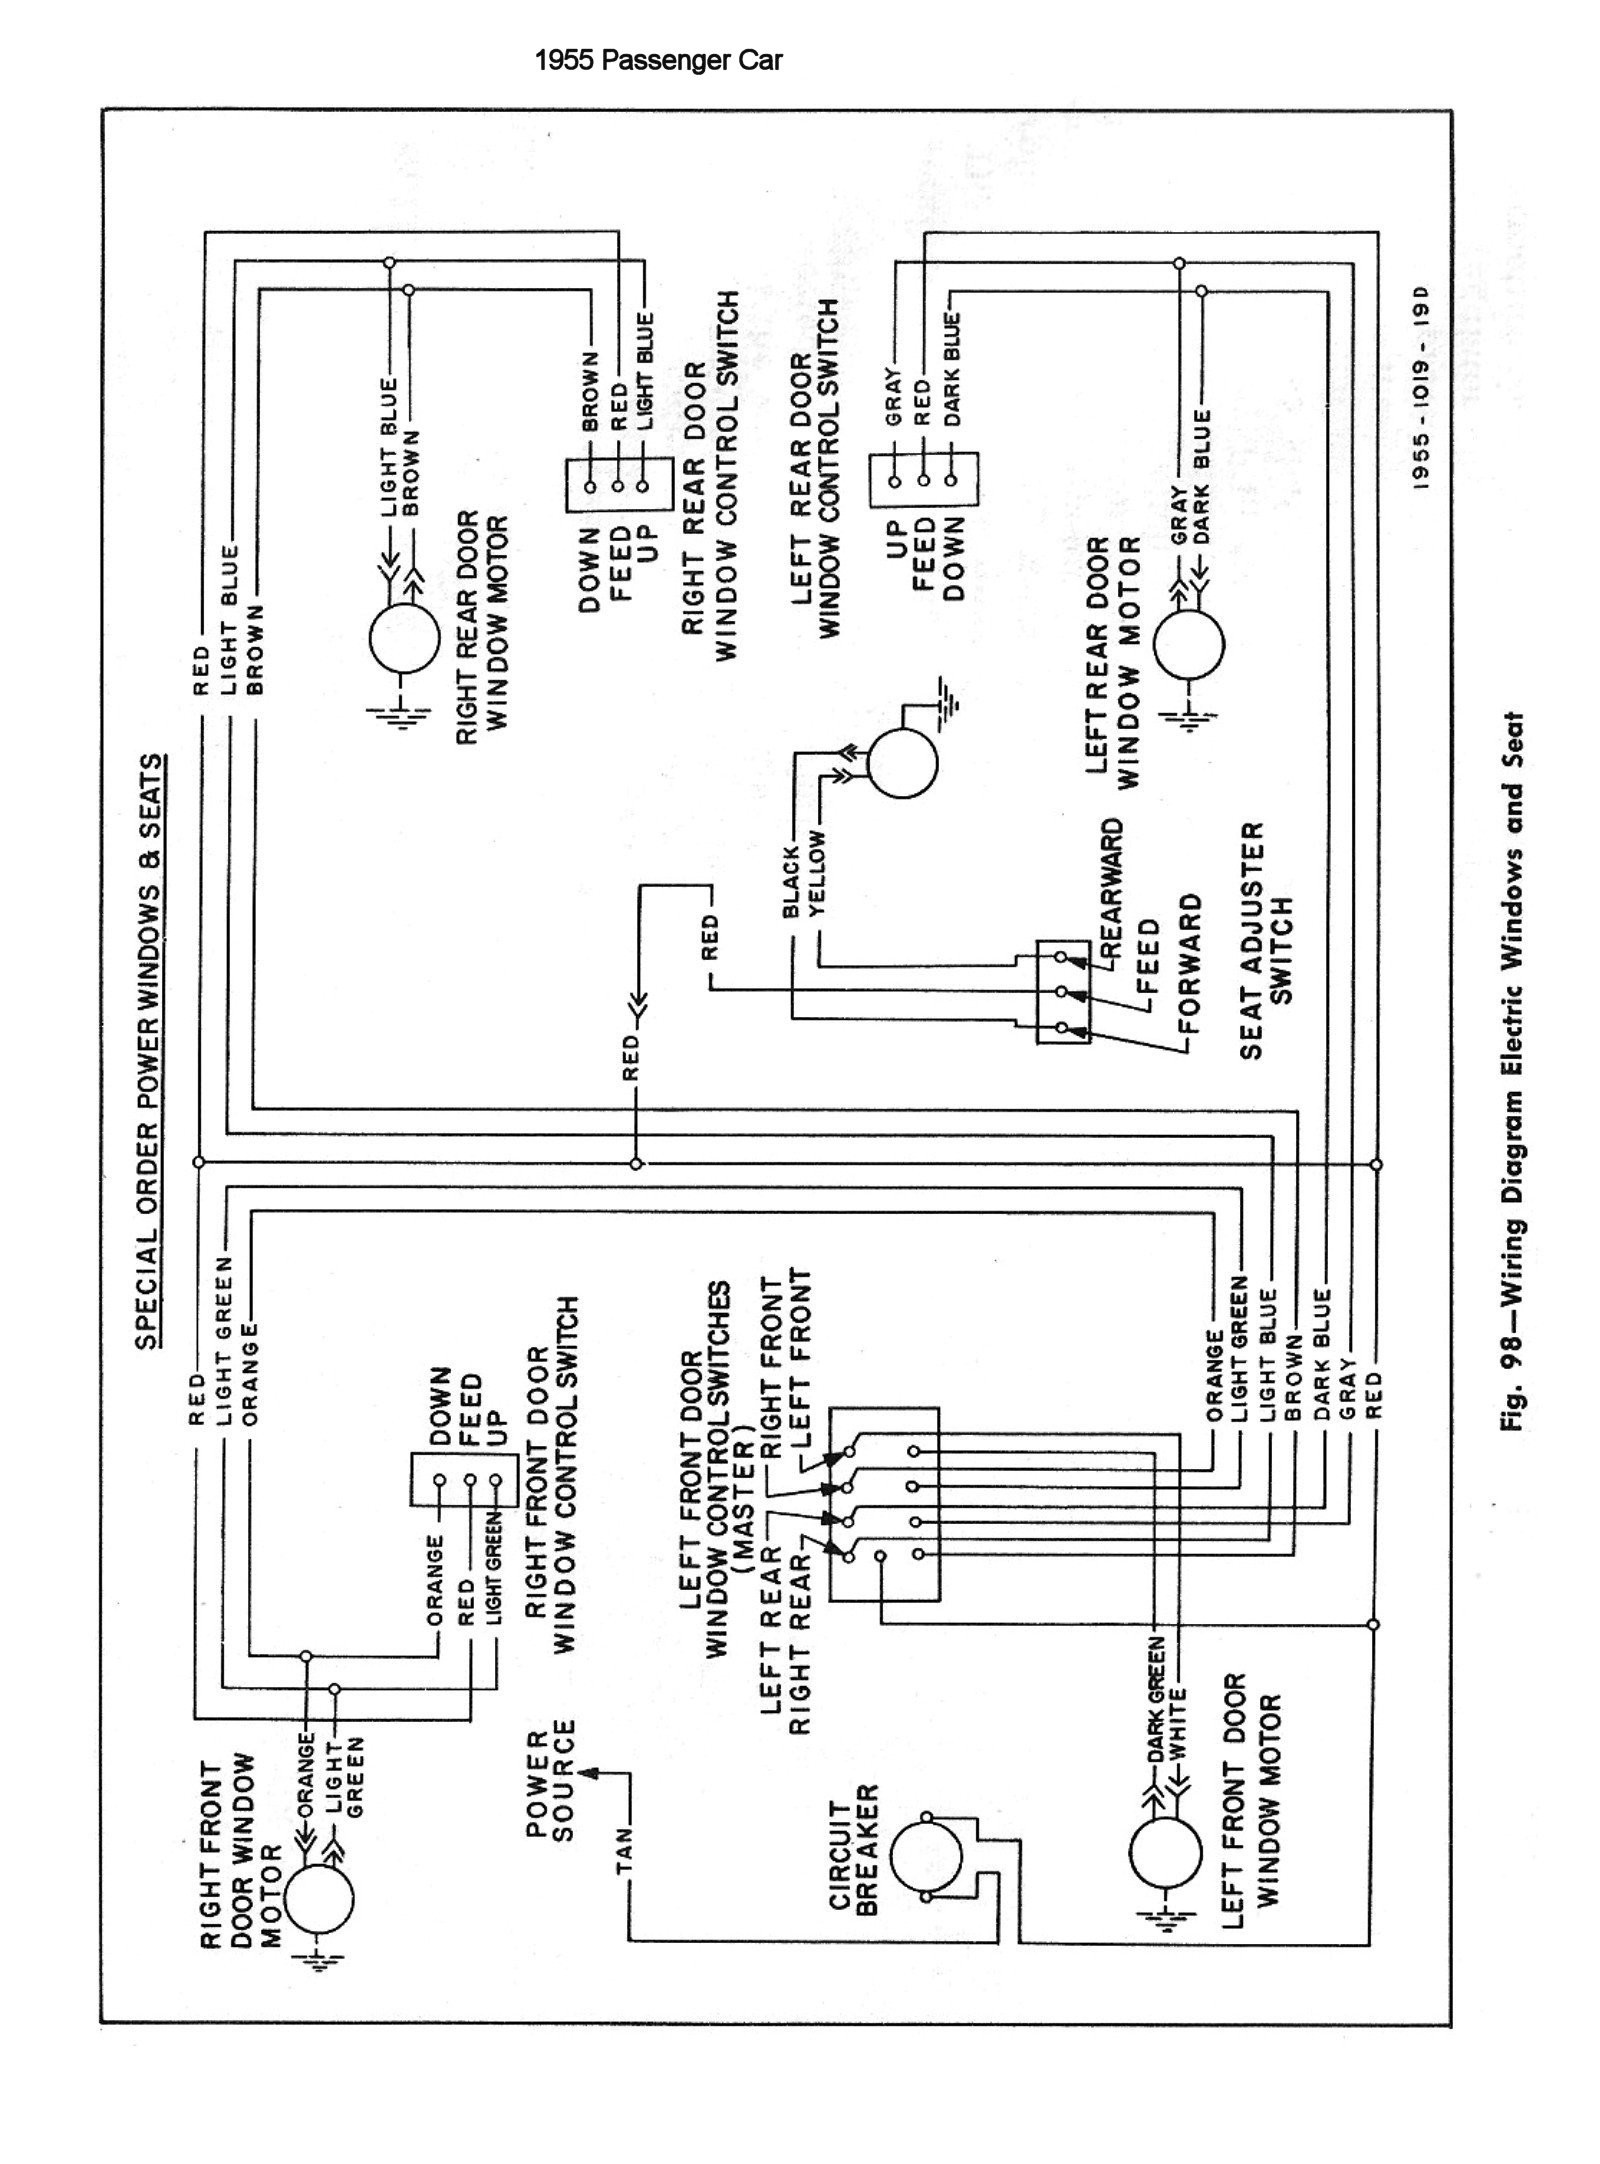 1986 Chevy Truck Wiring Diagram Chevy Wiring Diagrams Of 1986 Chevy Truck Wiring Diagram